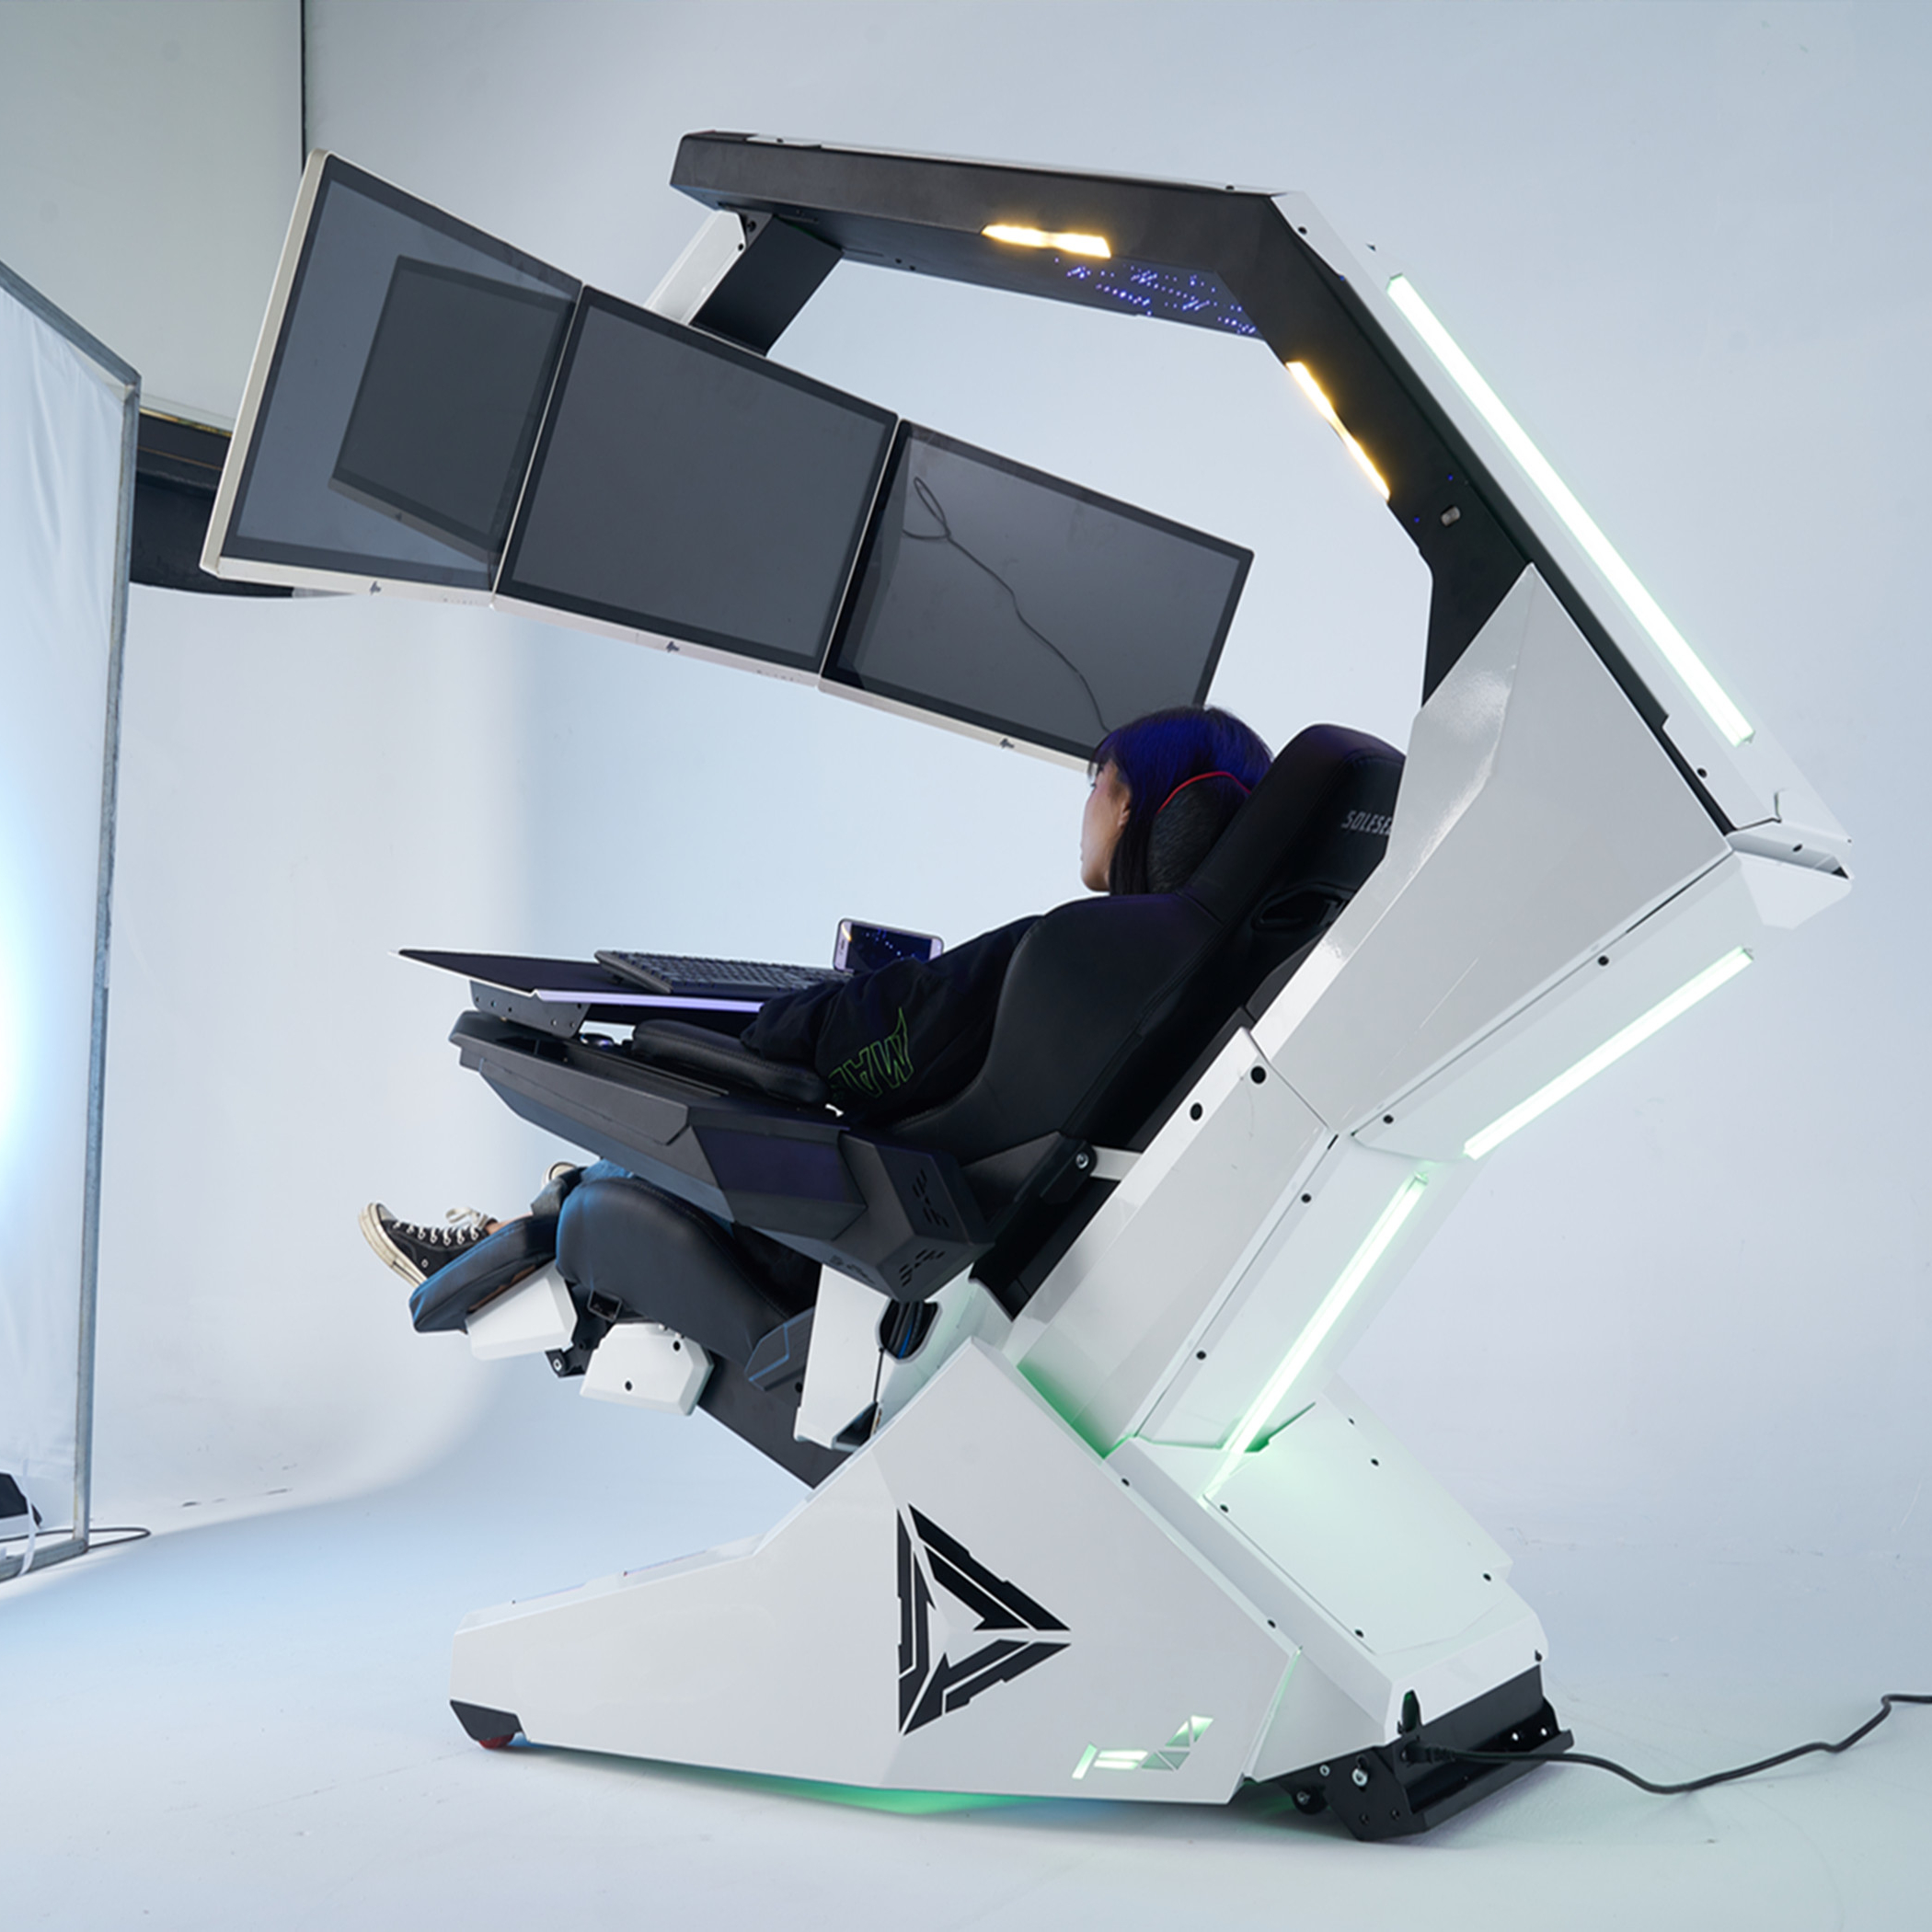 luxury high tech recline PC gaming chair with massage,Rolls Royce Stary ceiling RGB, for 3 screens R1-Pro Imperator works brand